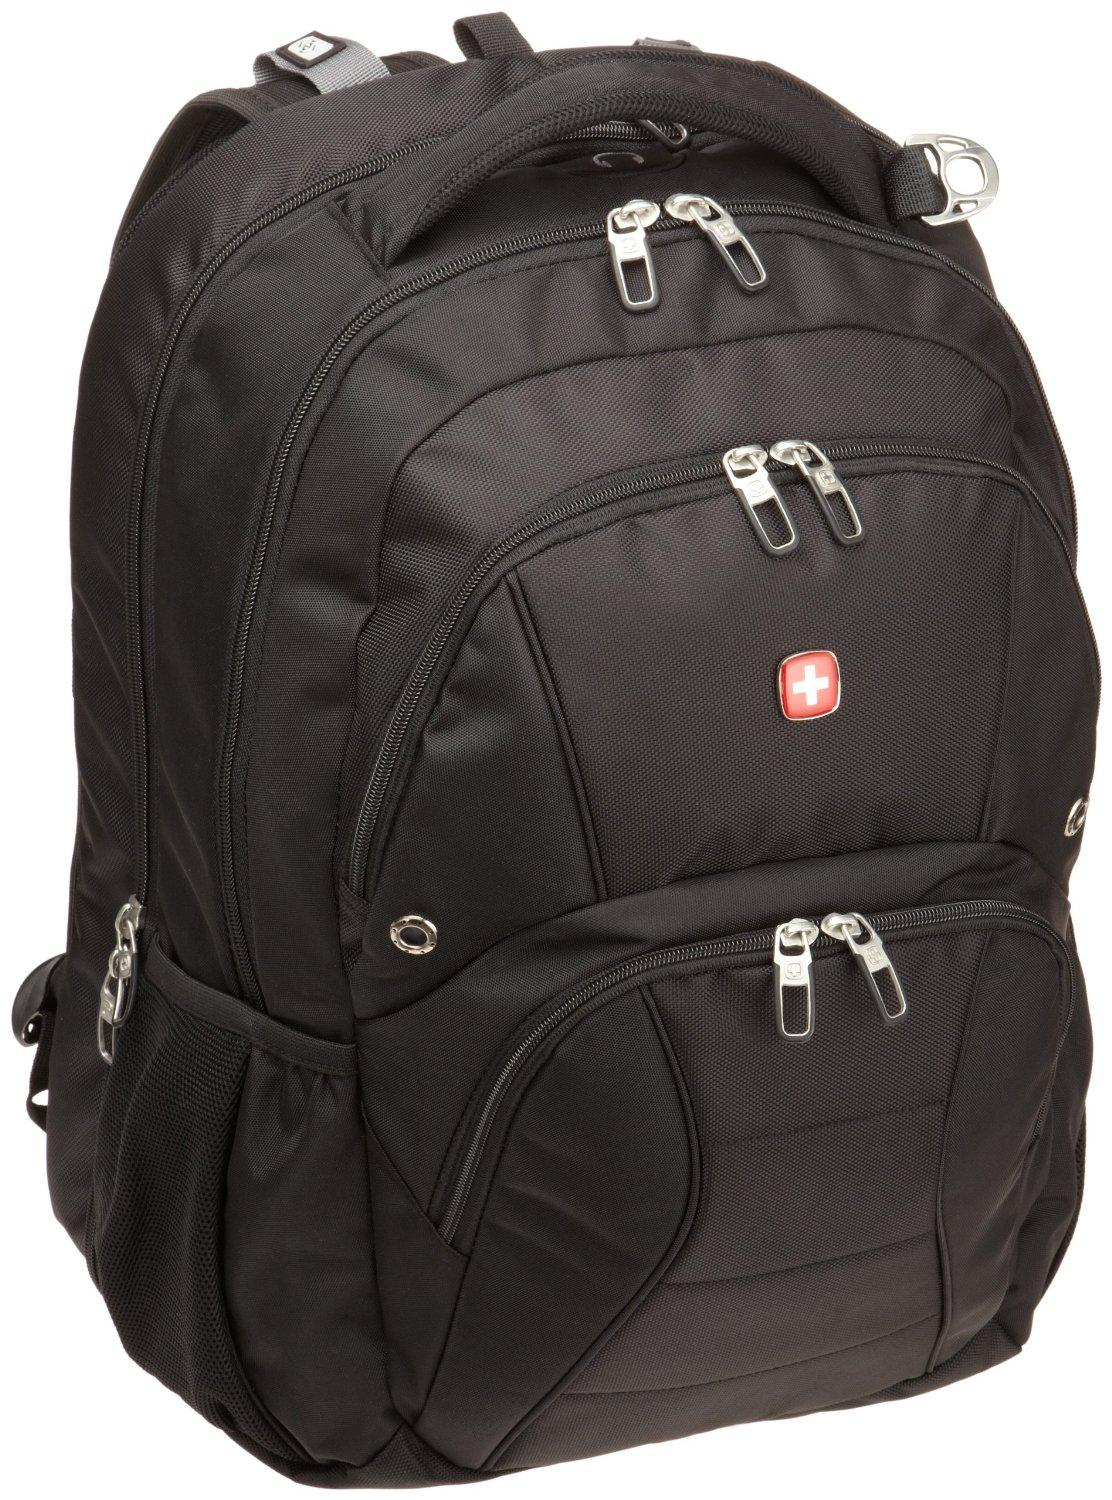 SwissGear ScanSmart Laptop Computer Backpack SA1908 (Black)